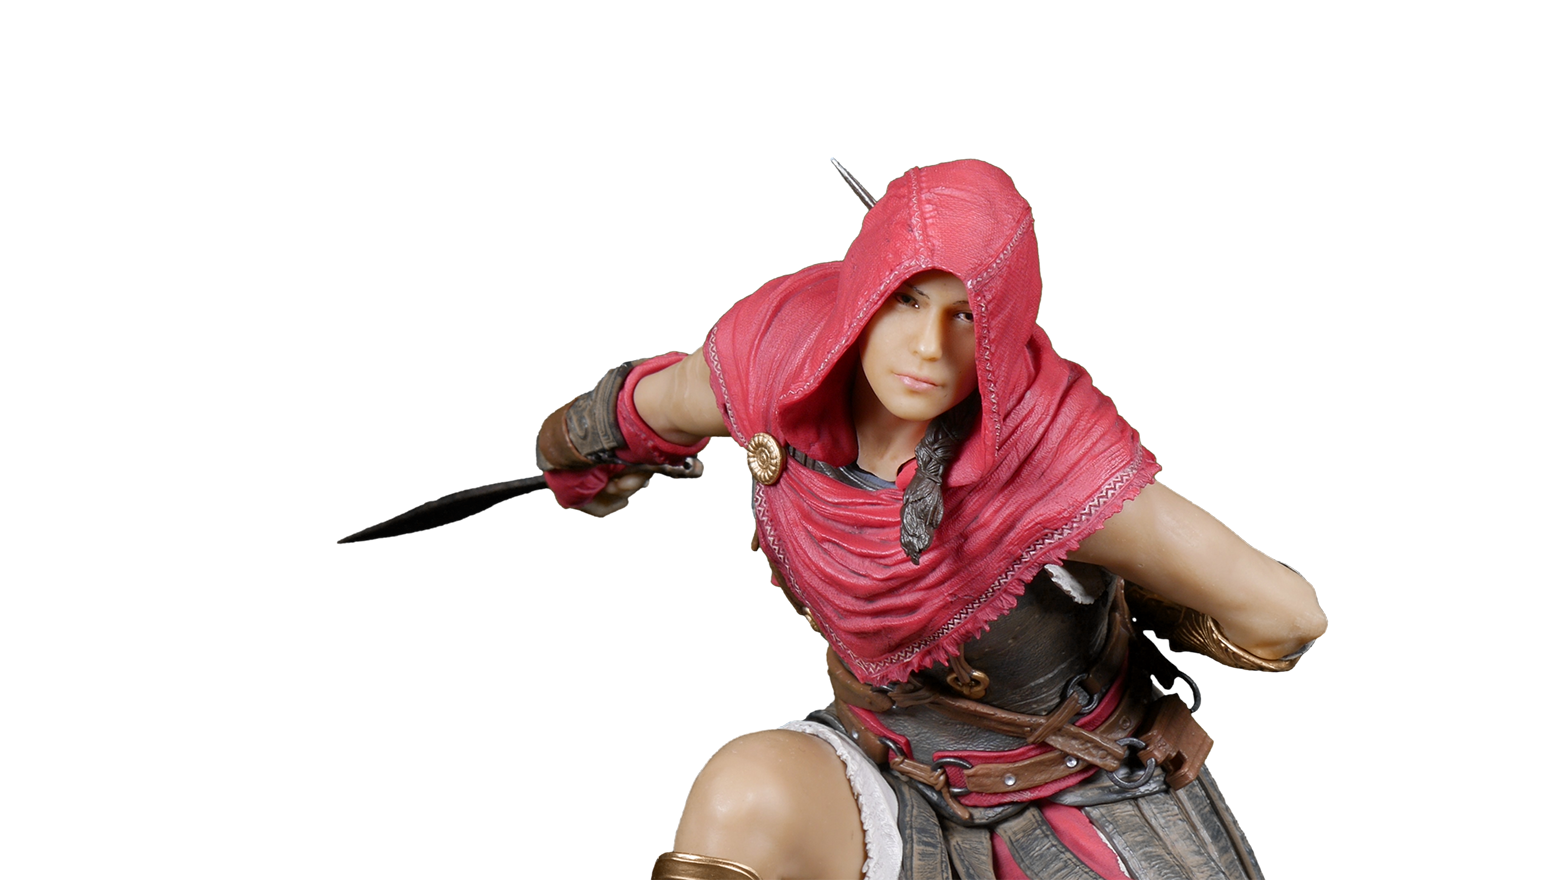 Assassins Creed PNG Images Transparent Free Download.